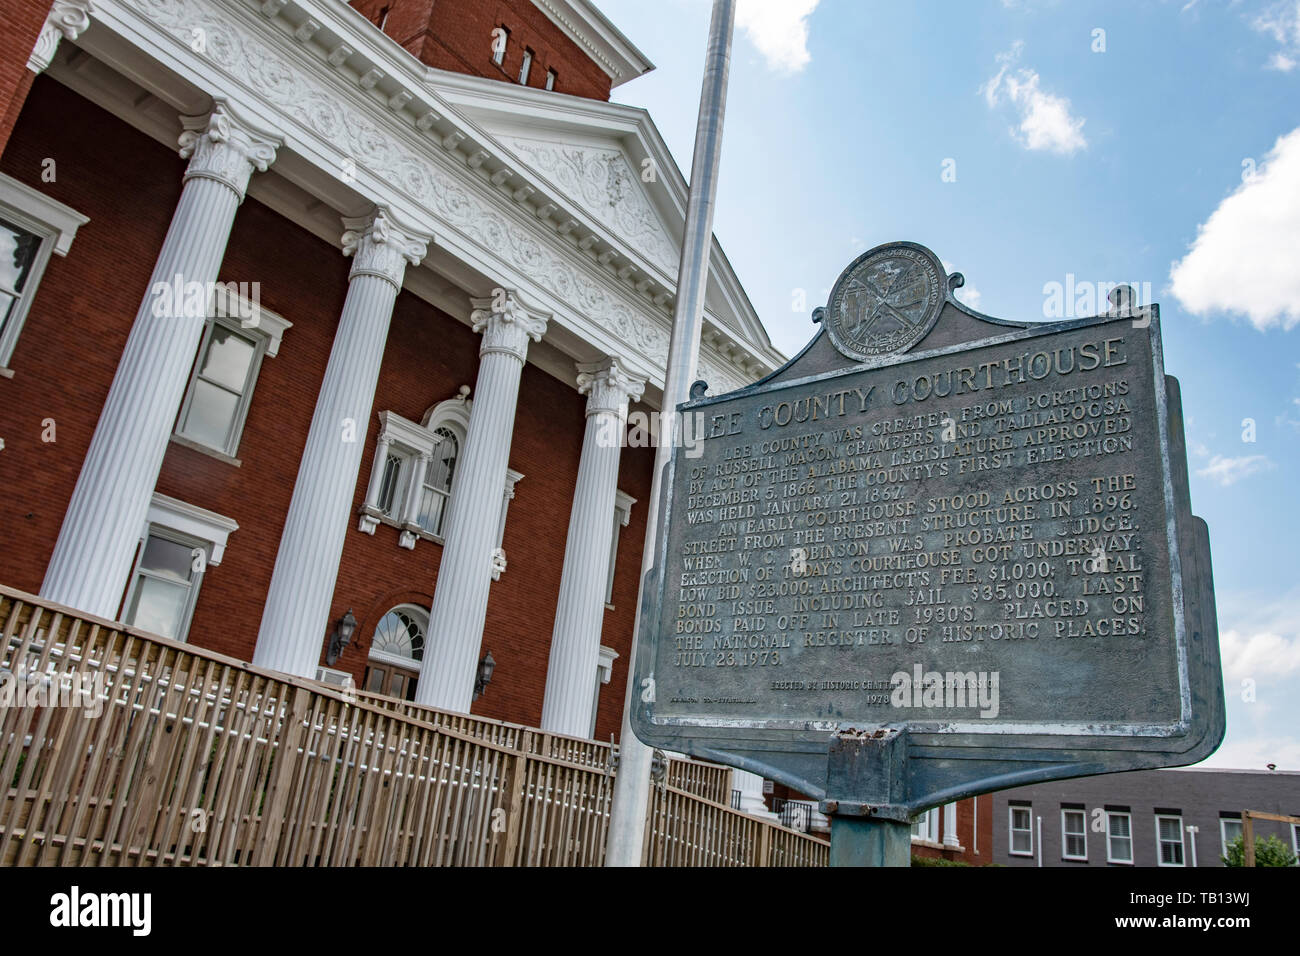 Opelika, Alabama/USA- May 10, 2019:  Historic marker in front of the Lee County Courthouse shot at a dutch tilt. - Stock Image